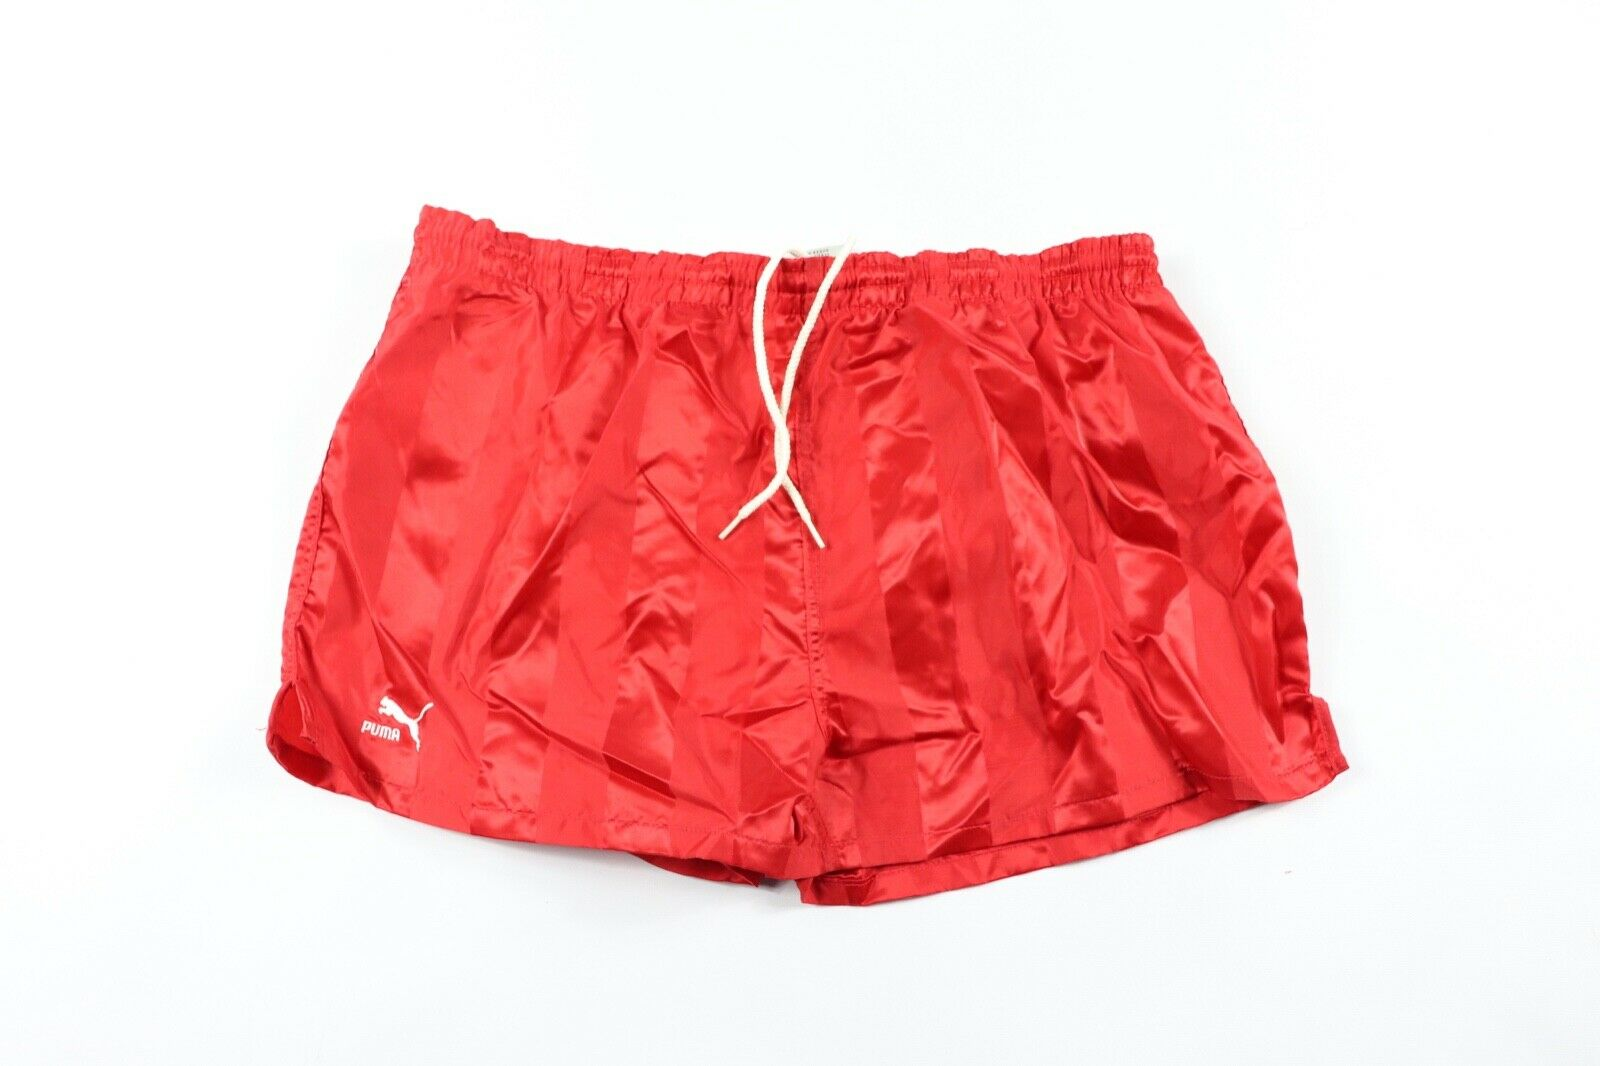 Vintage 90s New Puma Mens Small Spell Out Striped Nylon Lined Soccer Shorts Red